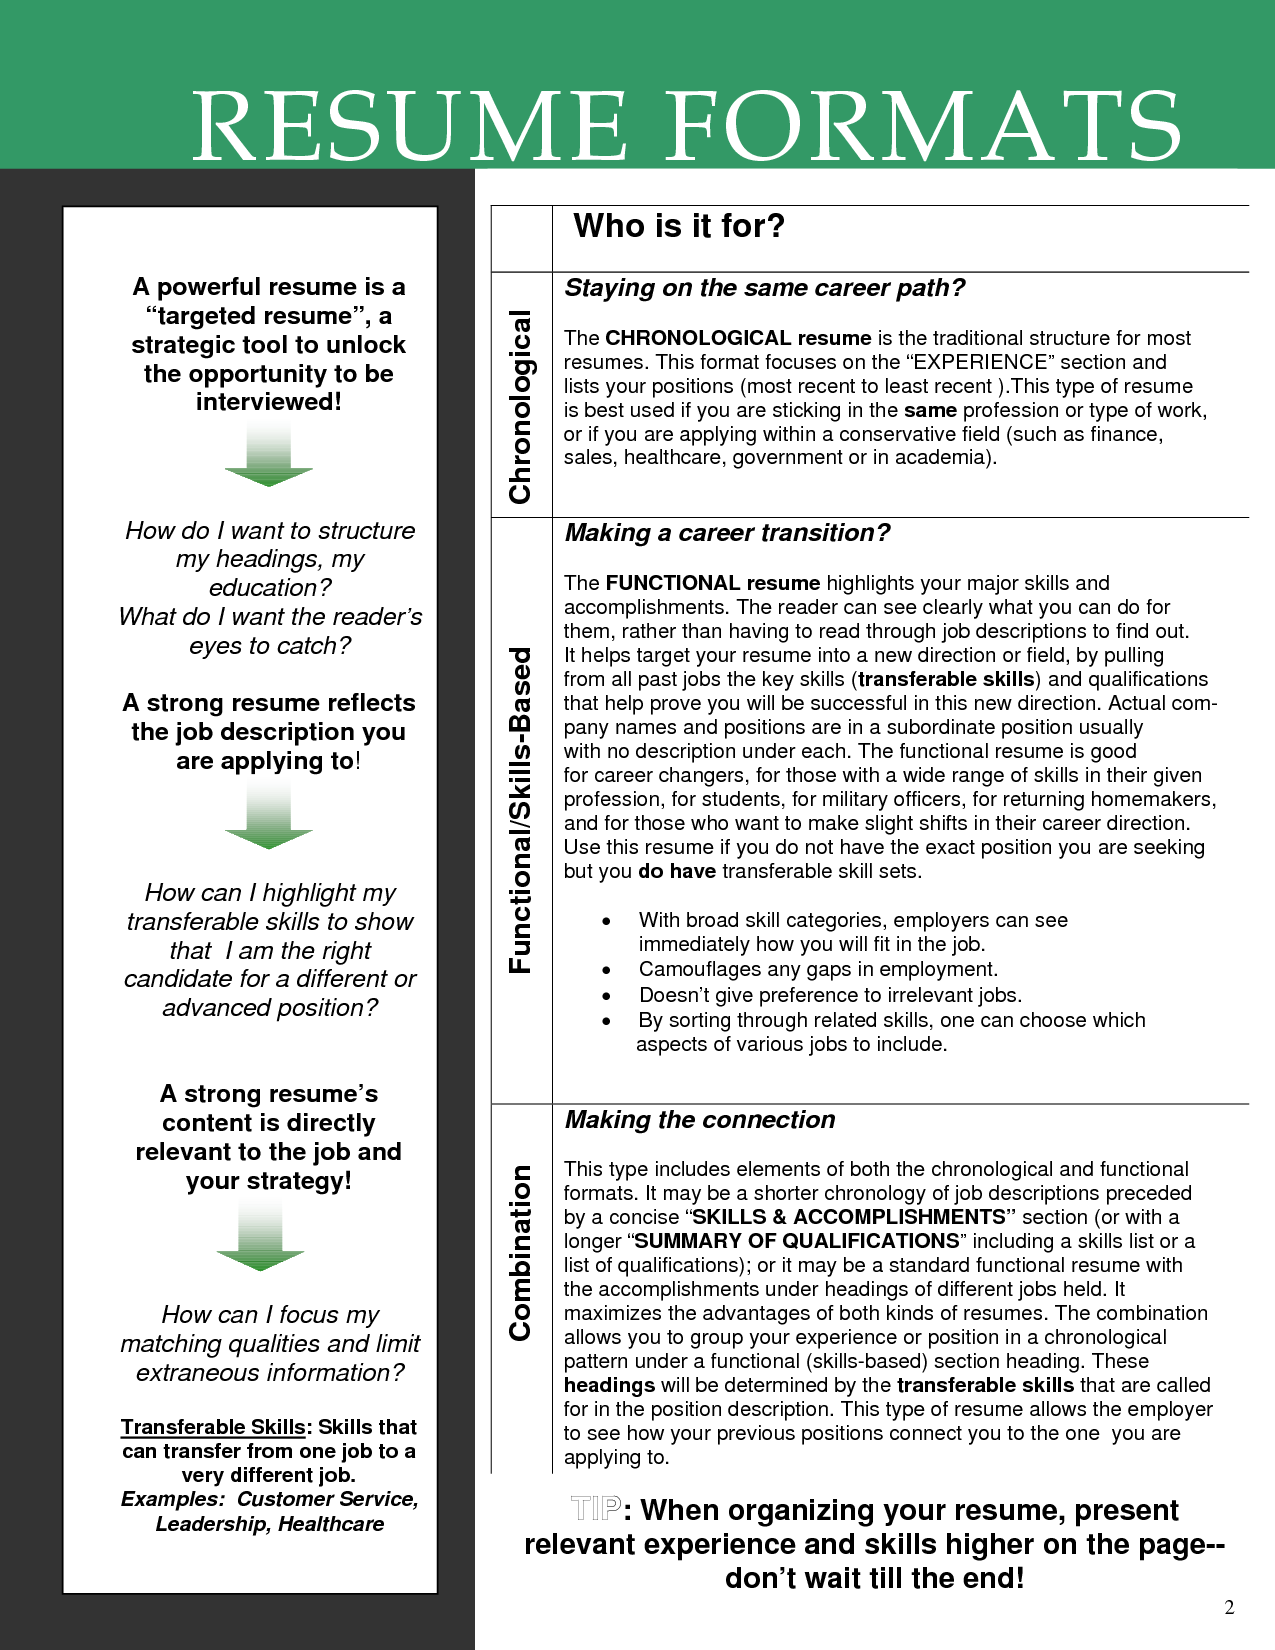 Skills Based Resume Template Skill Based Resume Examples  Resume Formats Who Is It For